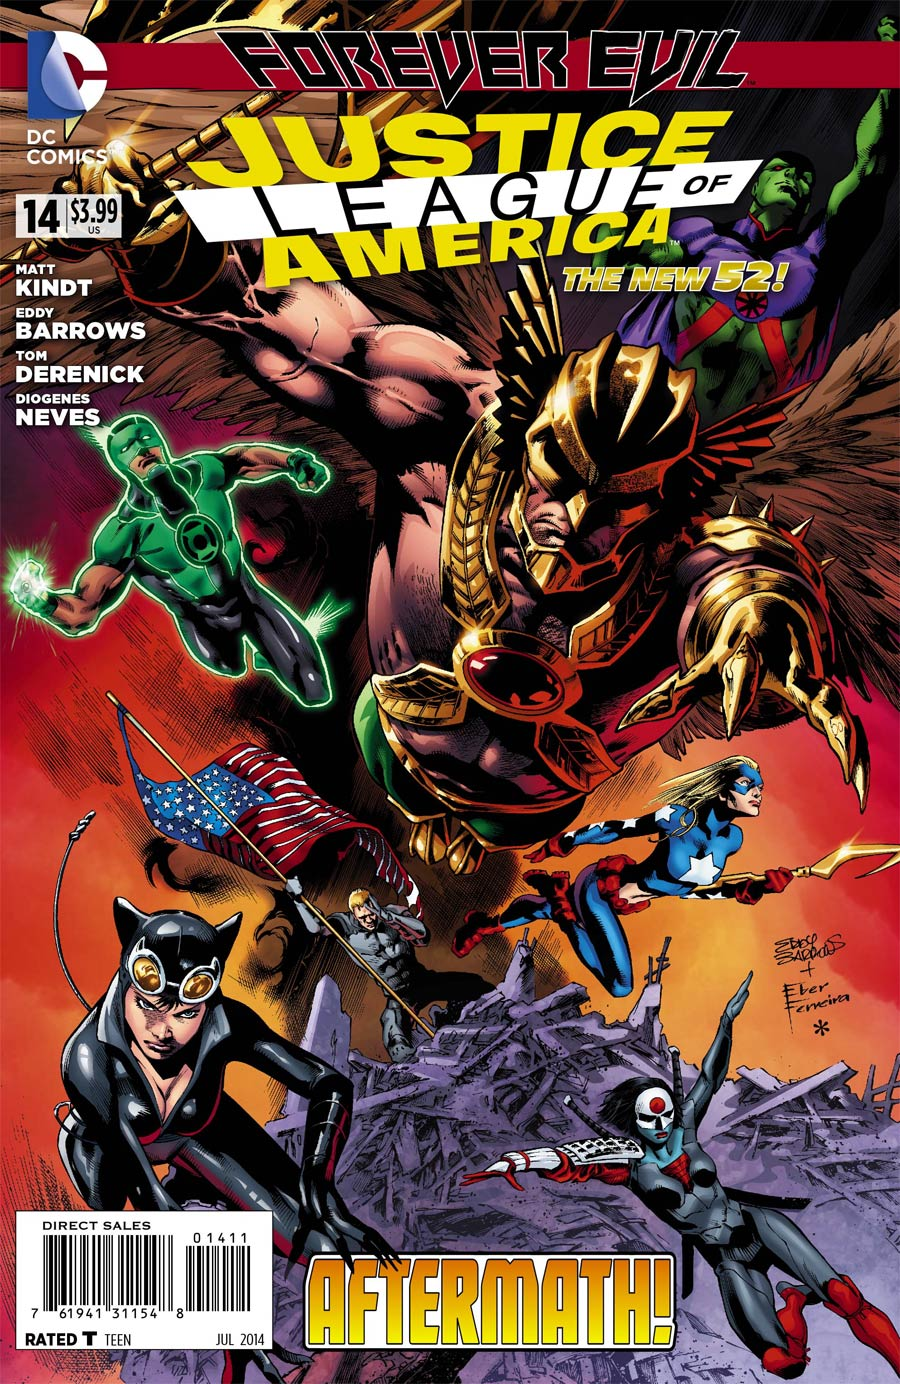 Justice League Of America Vol 3 #14 Cover A Regular Eddy Barrows Cover (Forever Evil Aftermath)